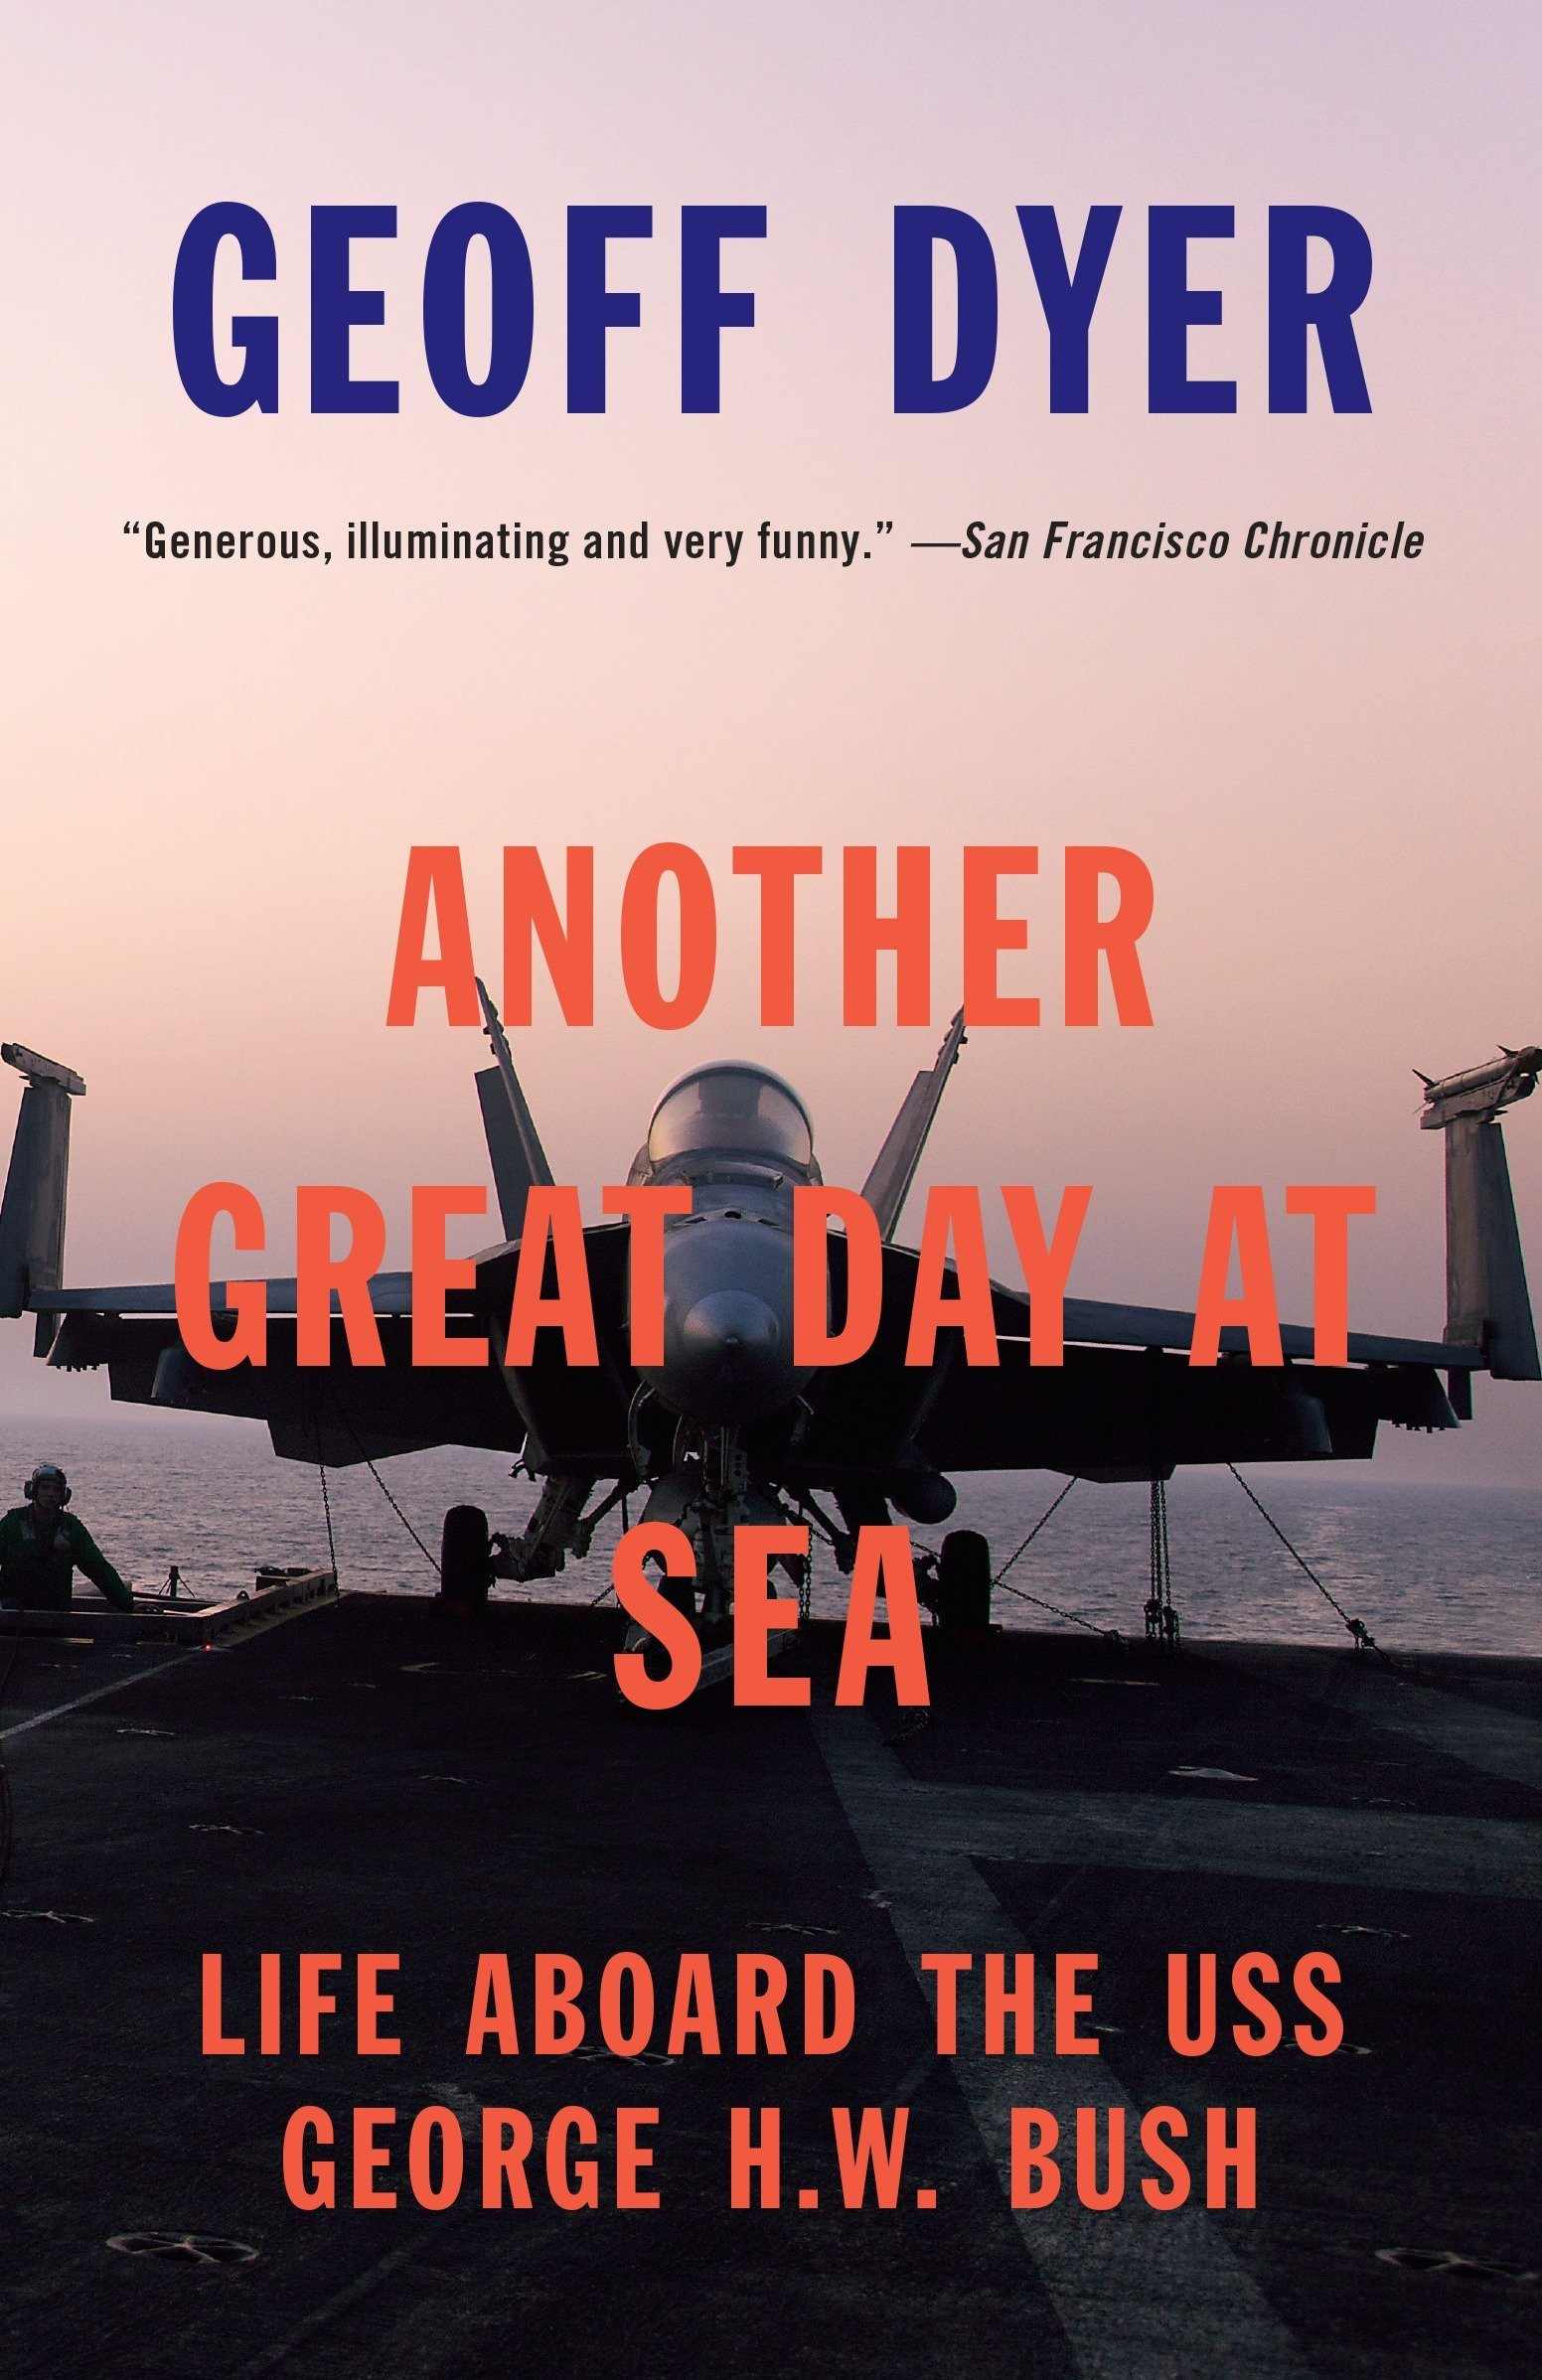 Another Great Day at Sea: Life Aboard the USS George H.W. Bush by Vintage